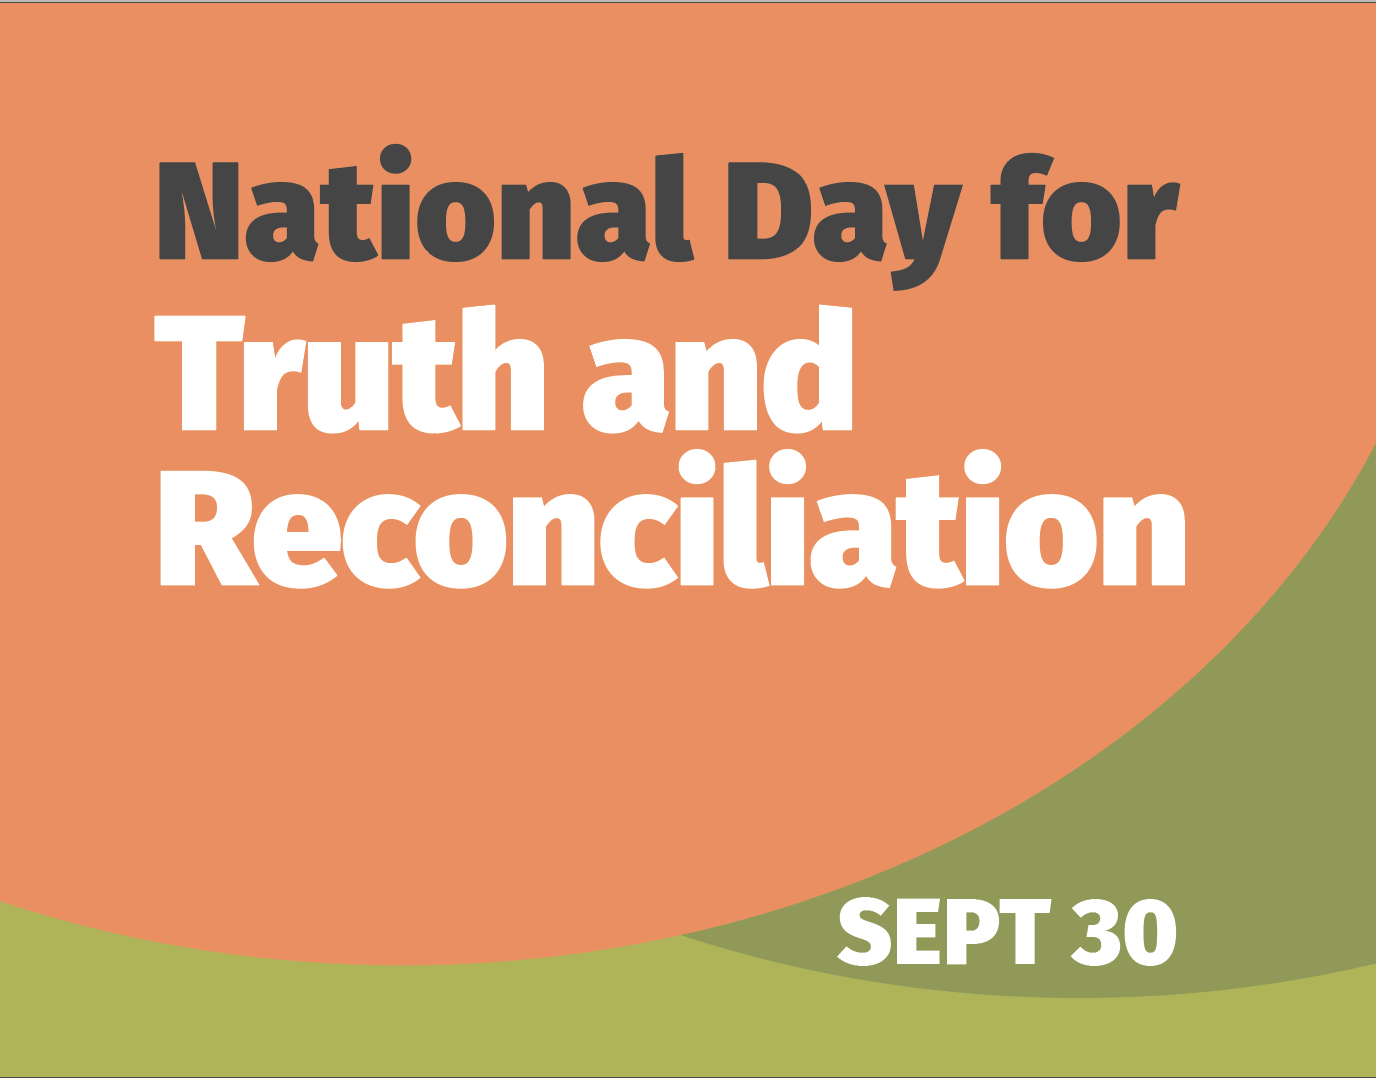 Reflecting on equity, self-determination and reconciliation